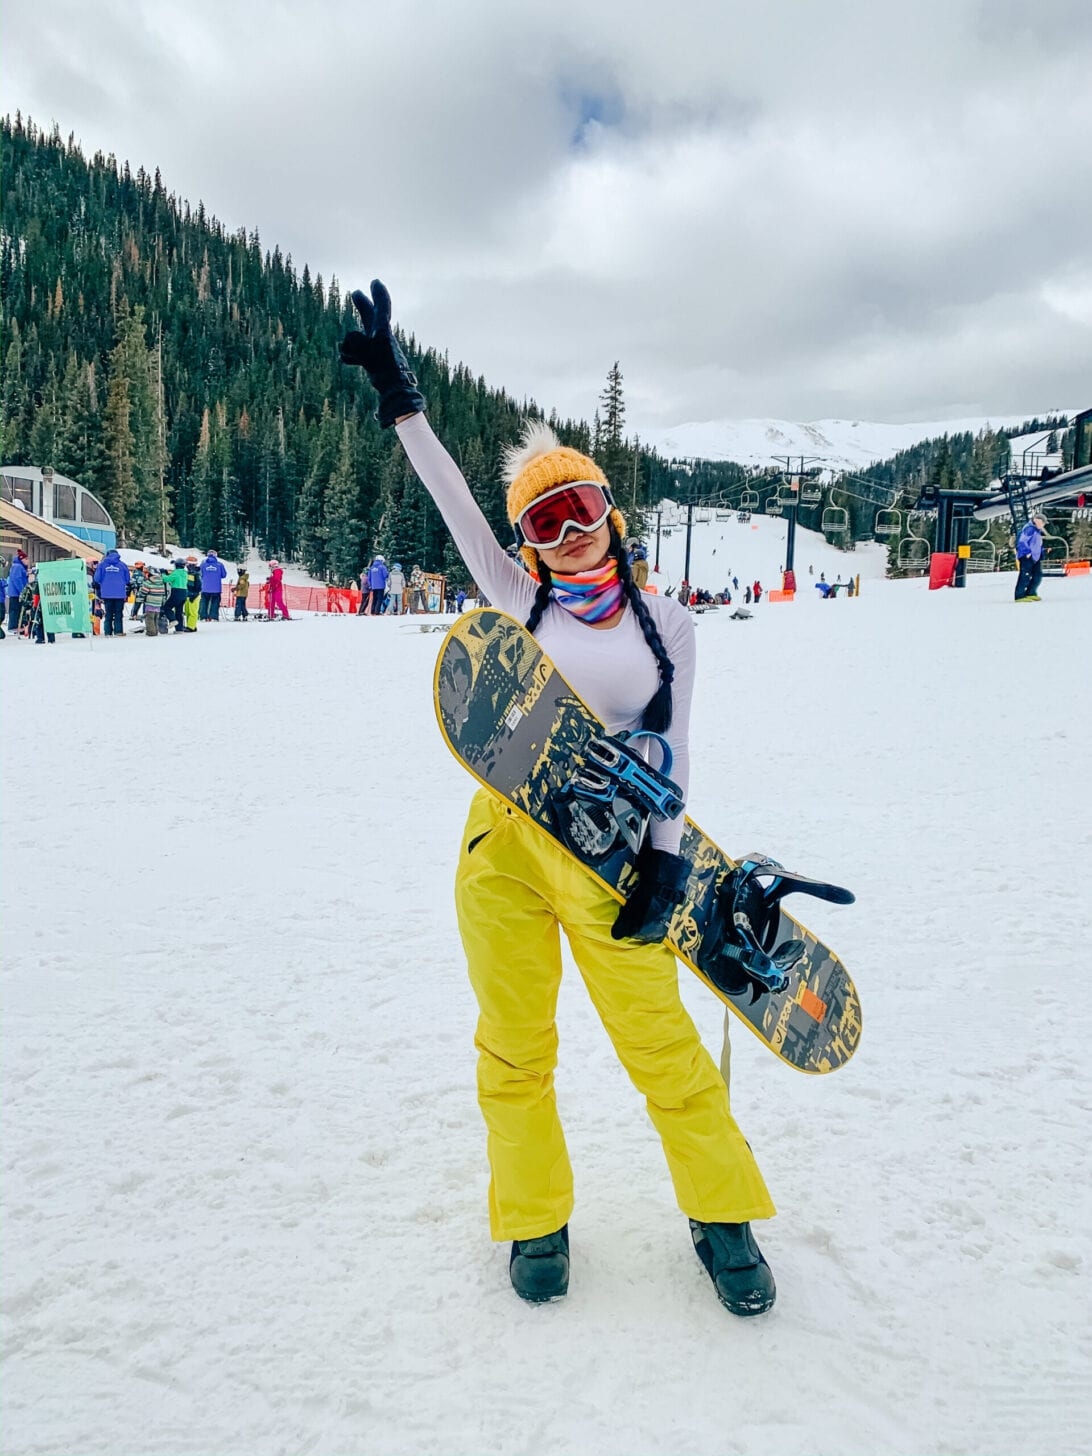 WHAT TO WEAR SNOWBOARDING, SNOW CLOTHES, SNOW ESSENTIALS, SNOW BOARDING GIRSL